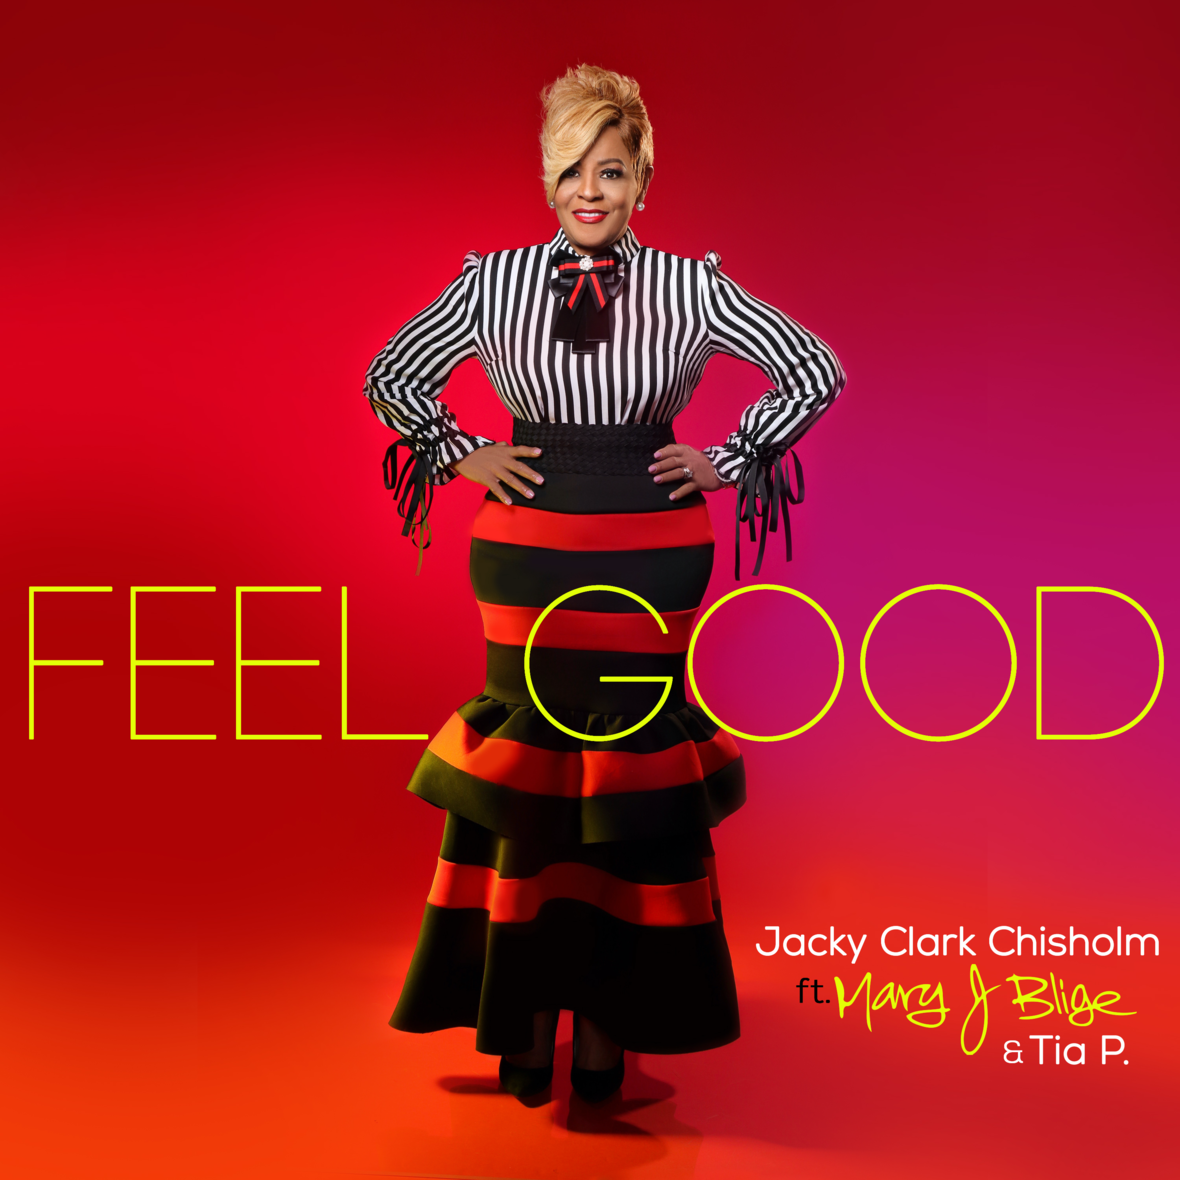 Jacky Clark Chisholm ft Mary J Blige Feel Good